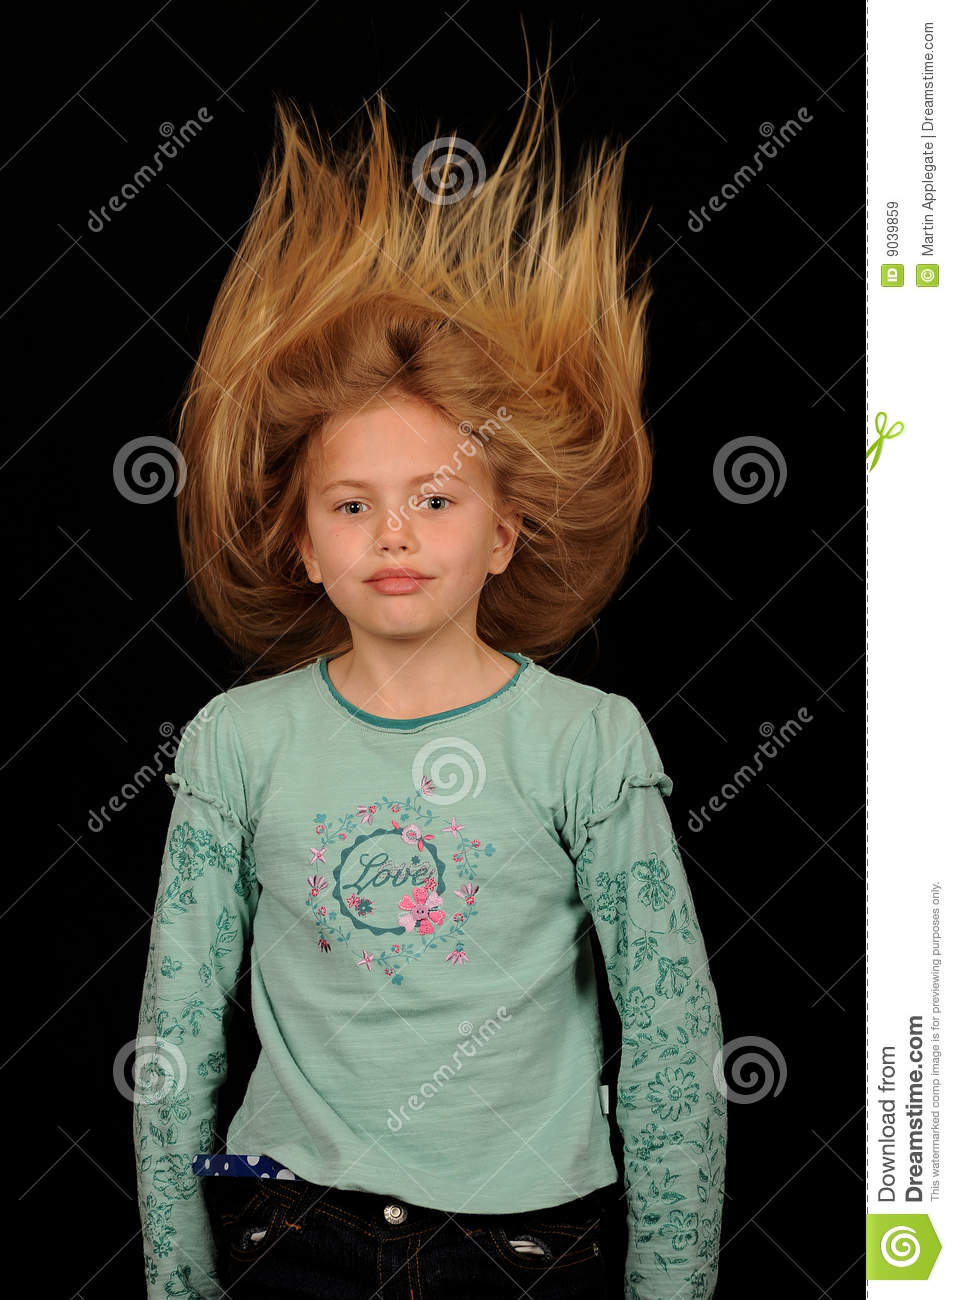 Blown Up Hair Stock Image Image Of Girl Blowing Shock